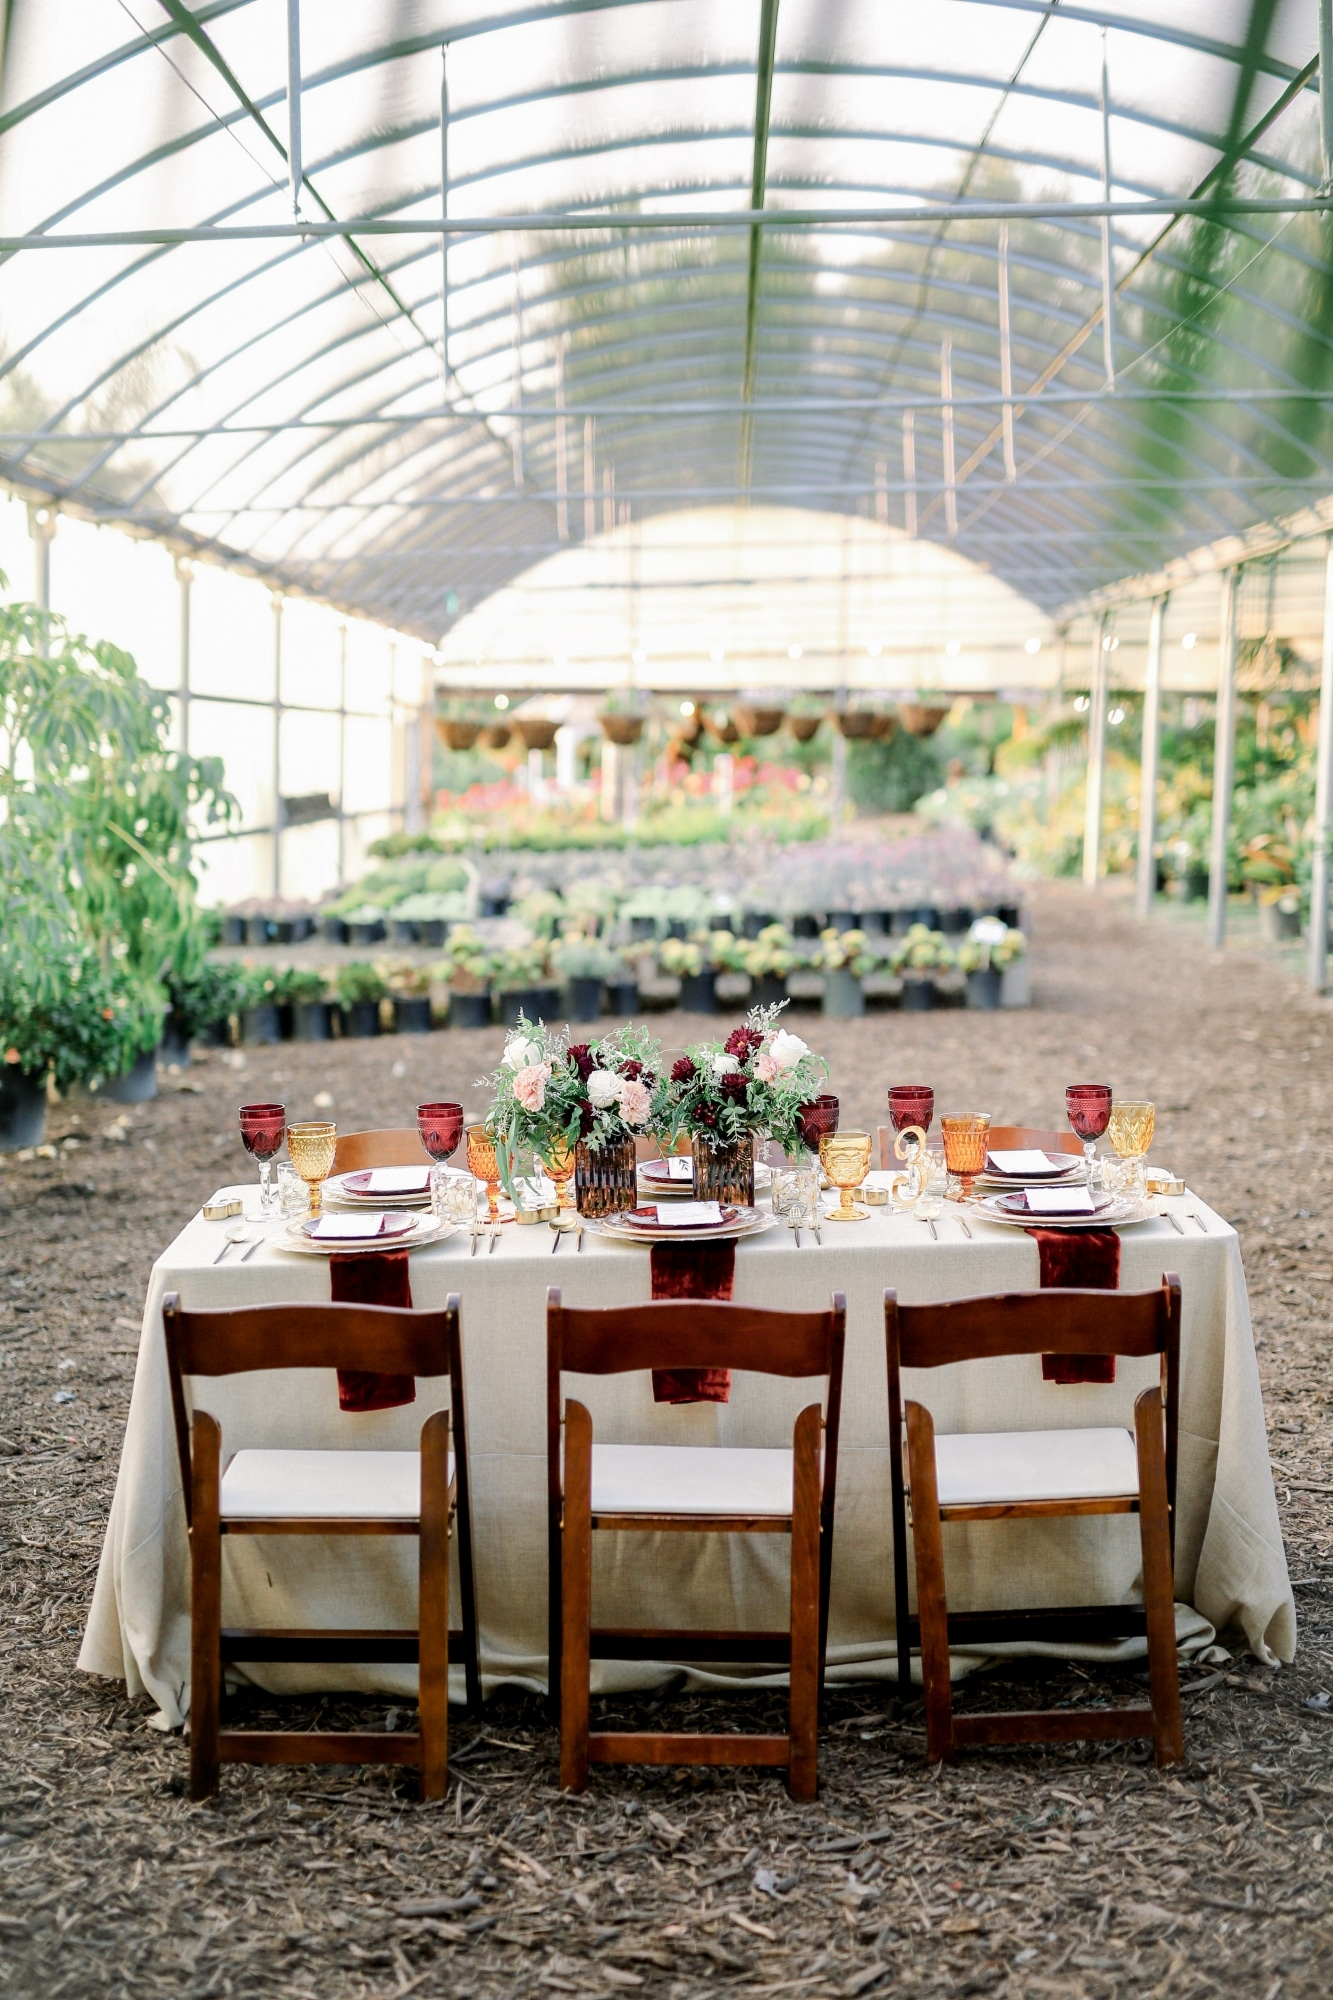 green house wedding garden venue with rustic wooden chairs and table set